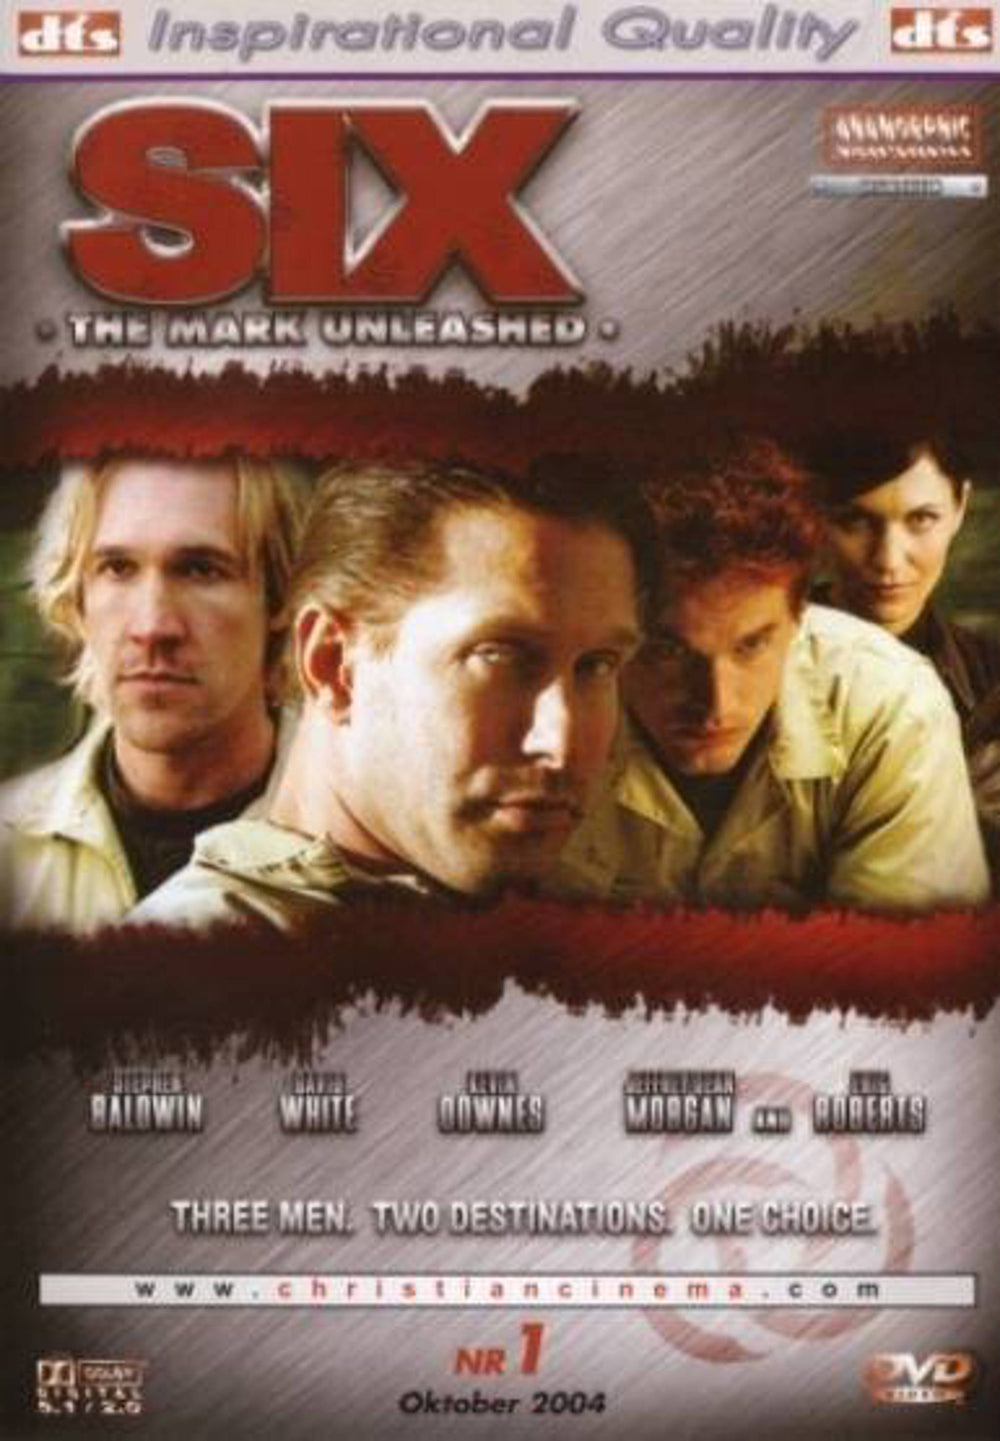 Six-the mark unleashed (DVD)